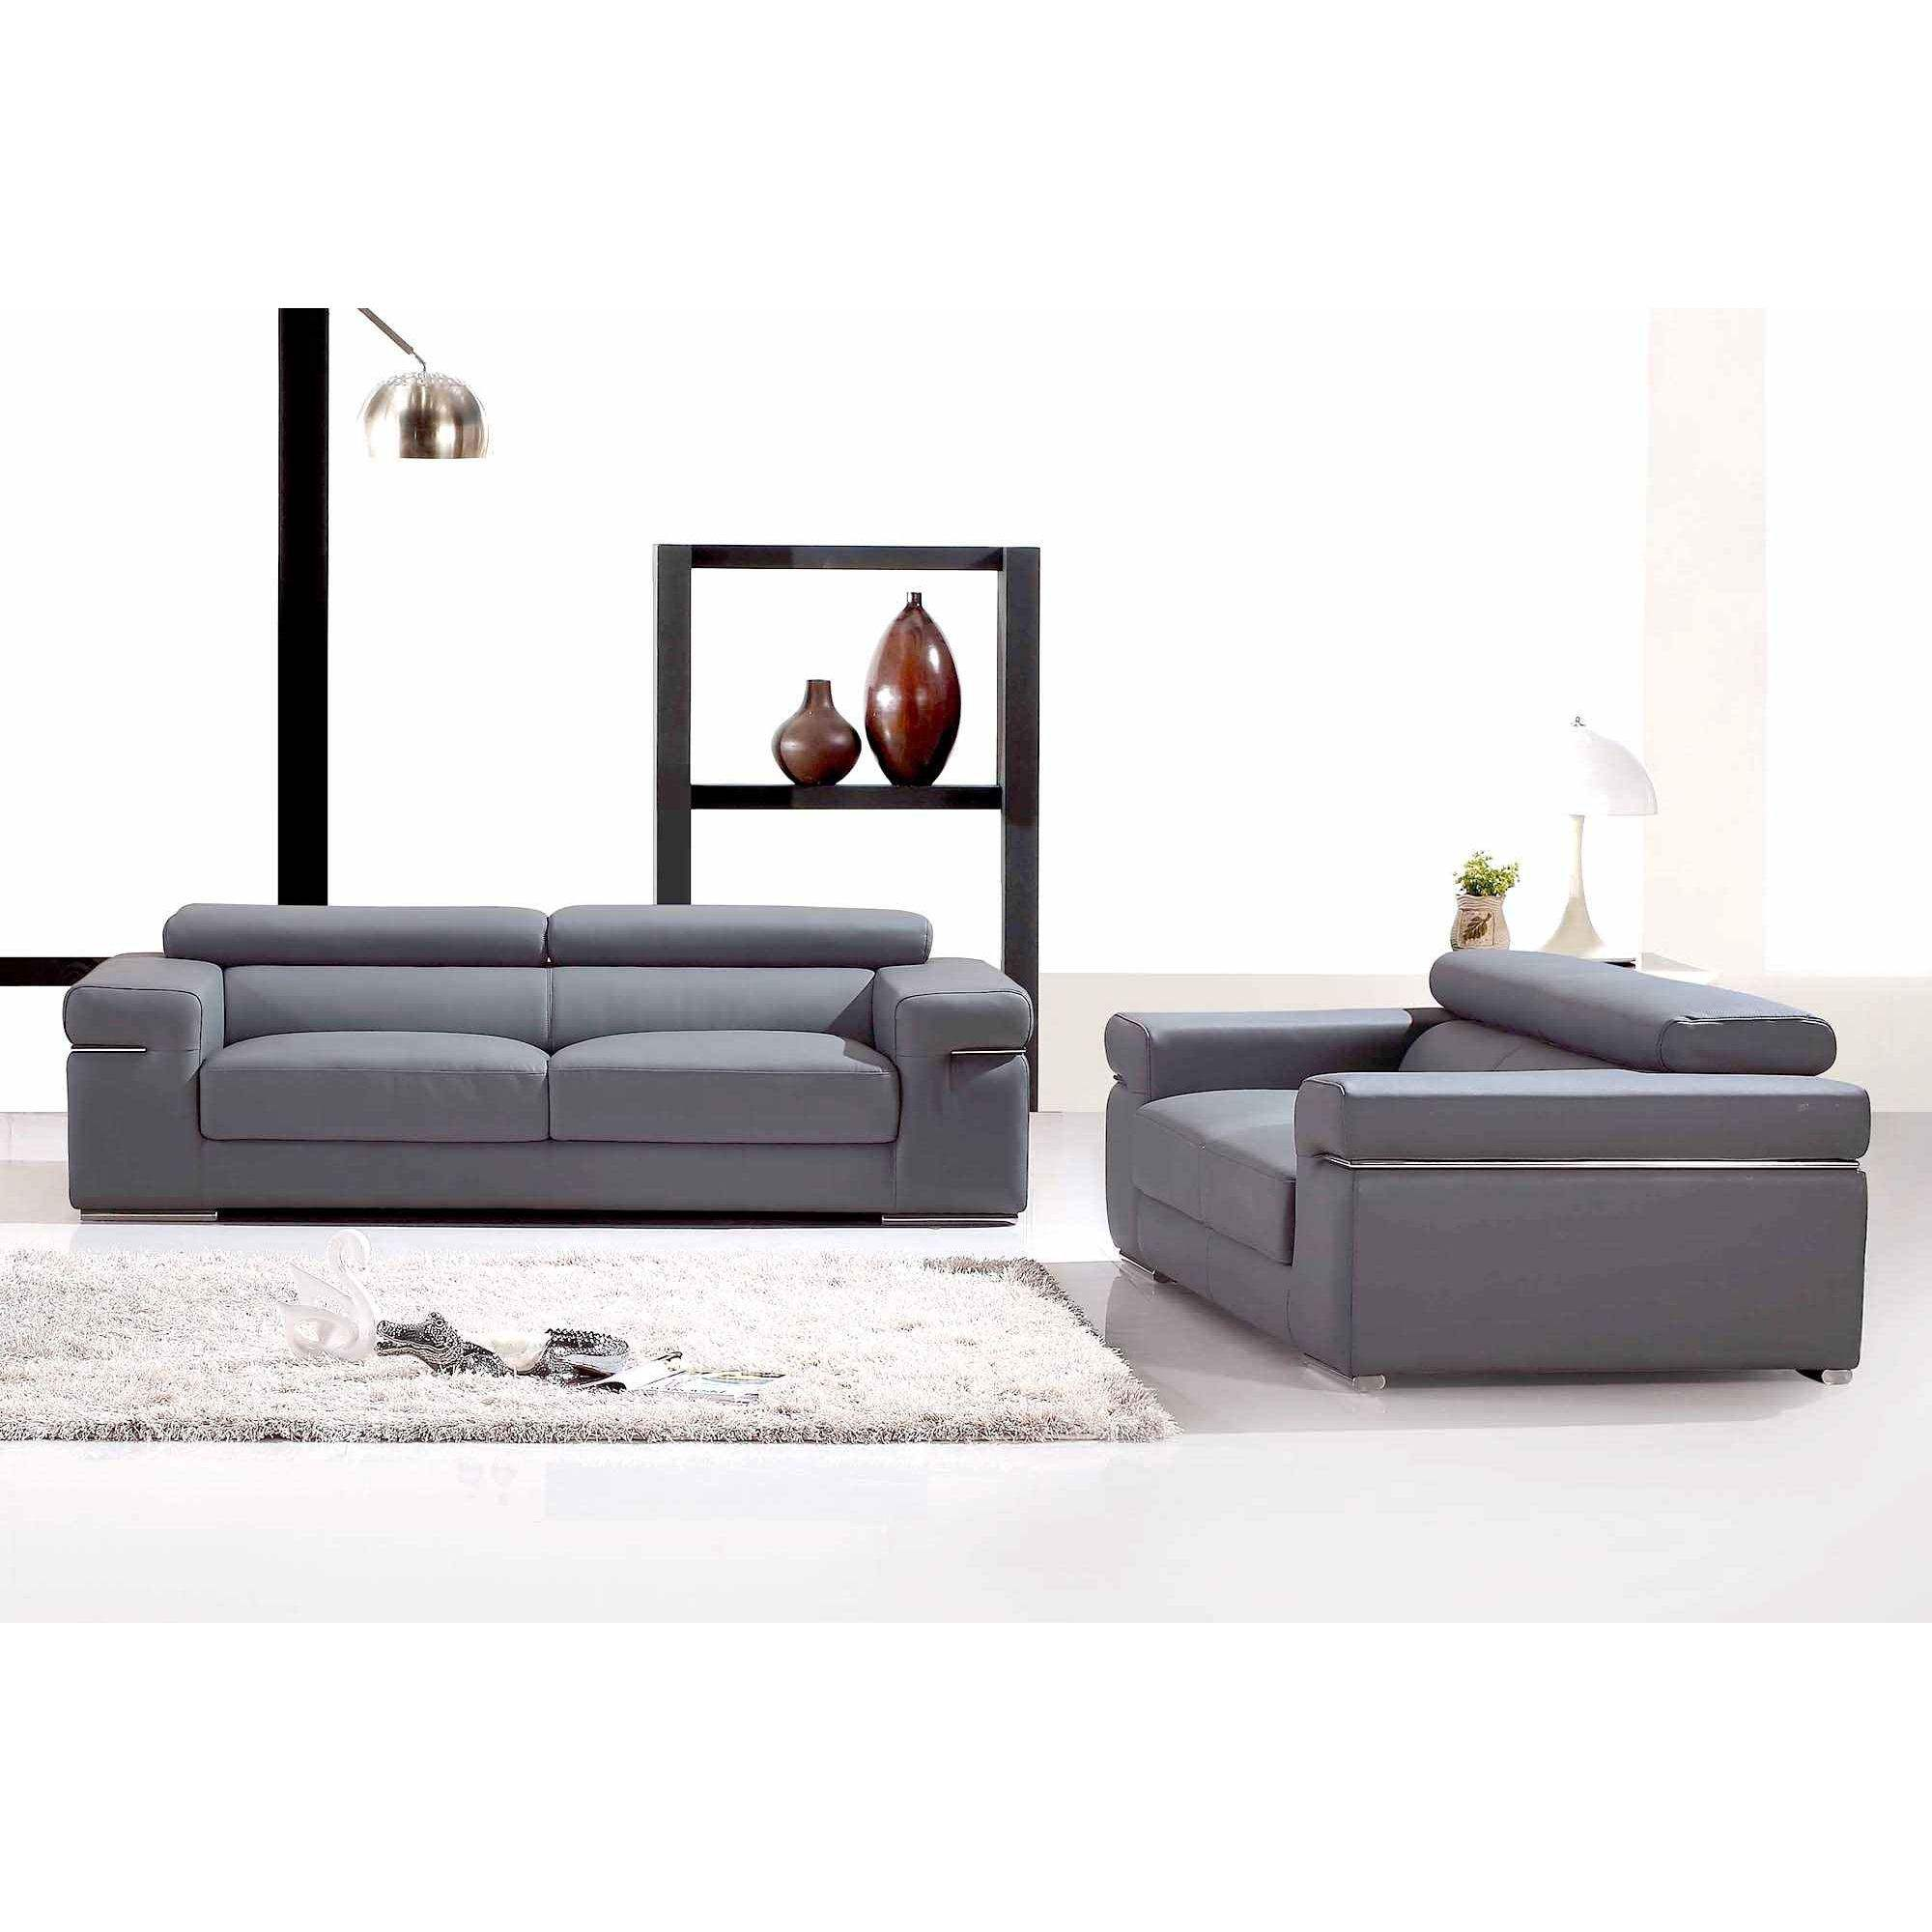 Deco in paris ensemble canape 3 2 places en cuir gris thomas can 3 2 gris t - Canape chesterfield cuir gris ...